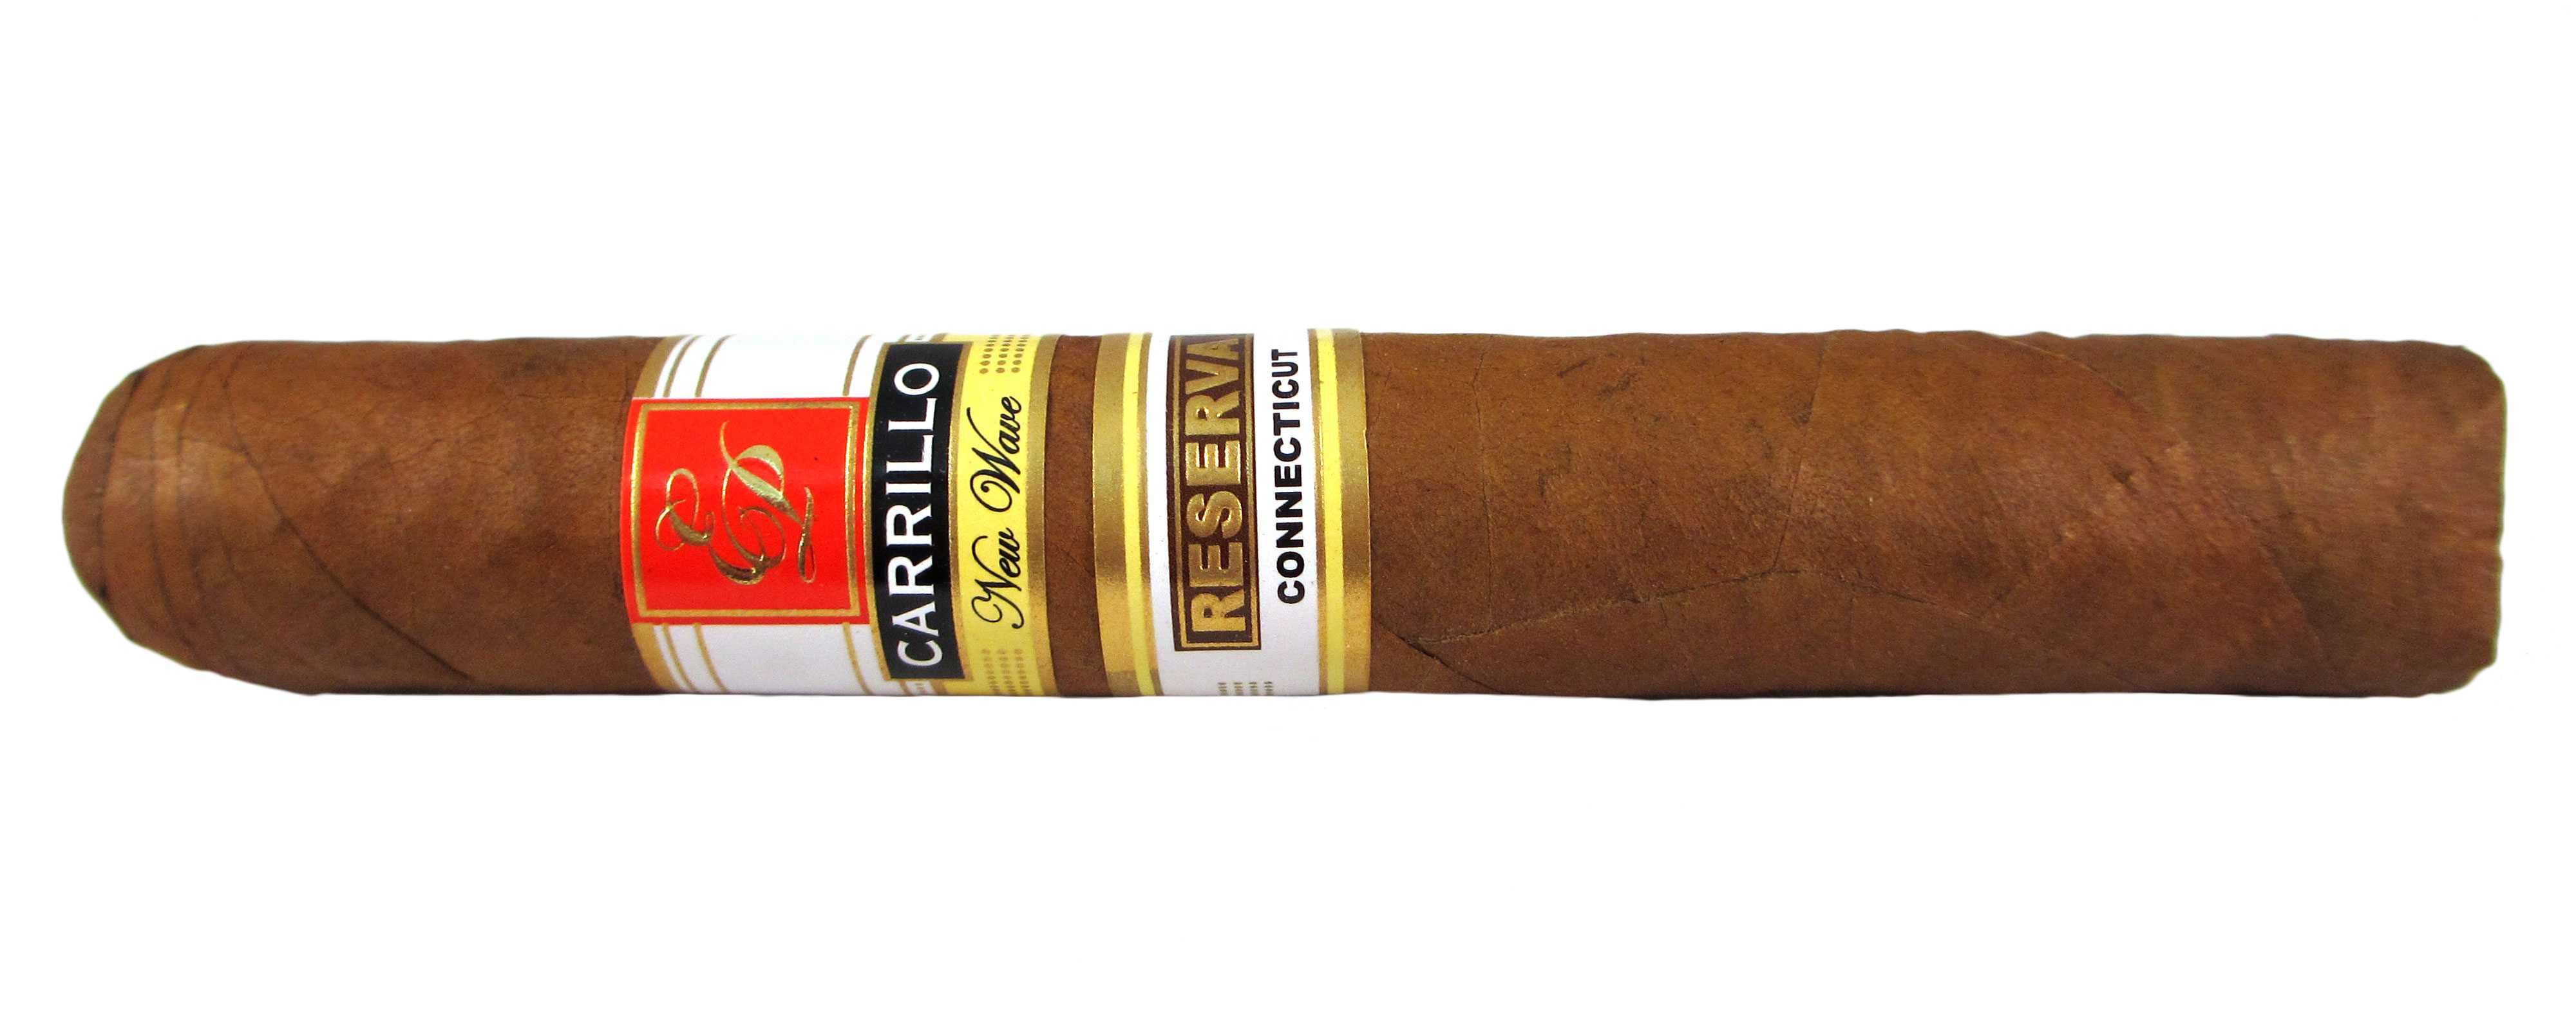 Blind Cigar Review: E.P. Carrillo | New Wave Connecticut Reserva Robusto